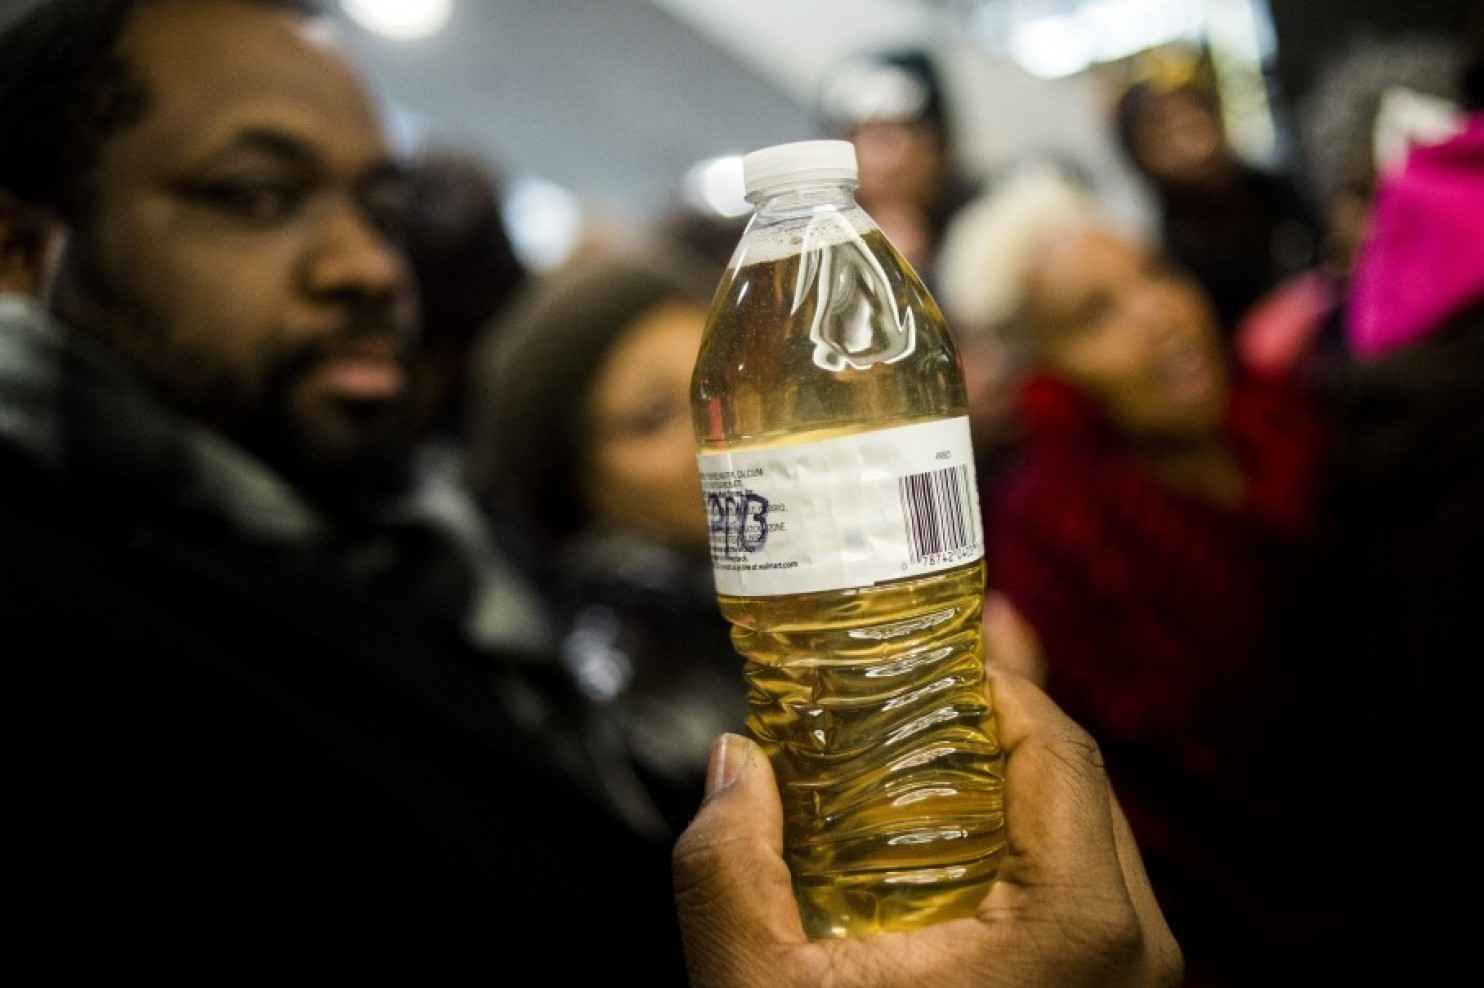 Flint threatening 8,000 residents with foreclosure if they don't pay for poison water.